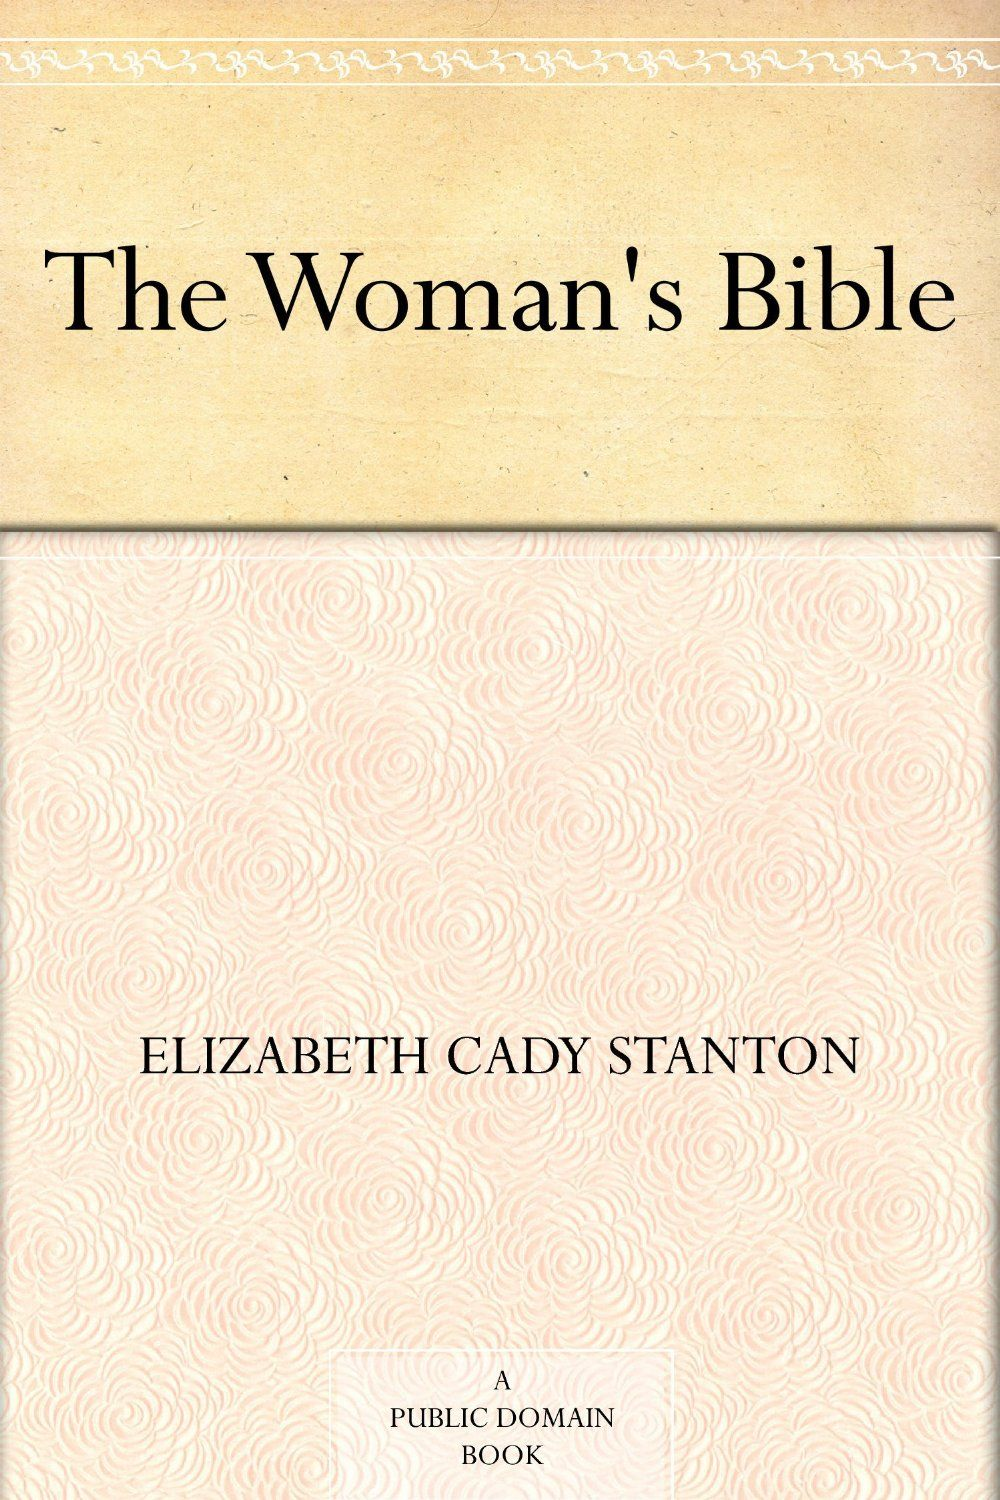 The Woman's Bible ($0 00) | Books Worth Reading | Free kindle books